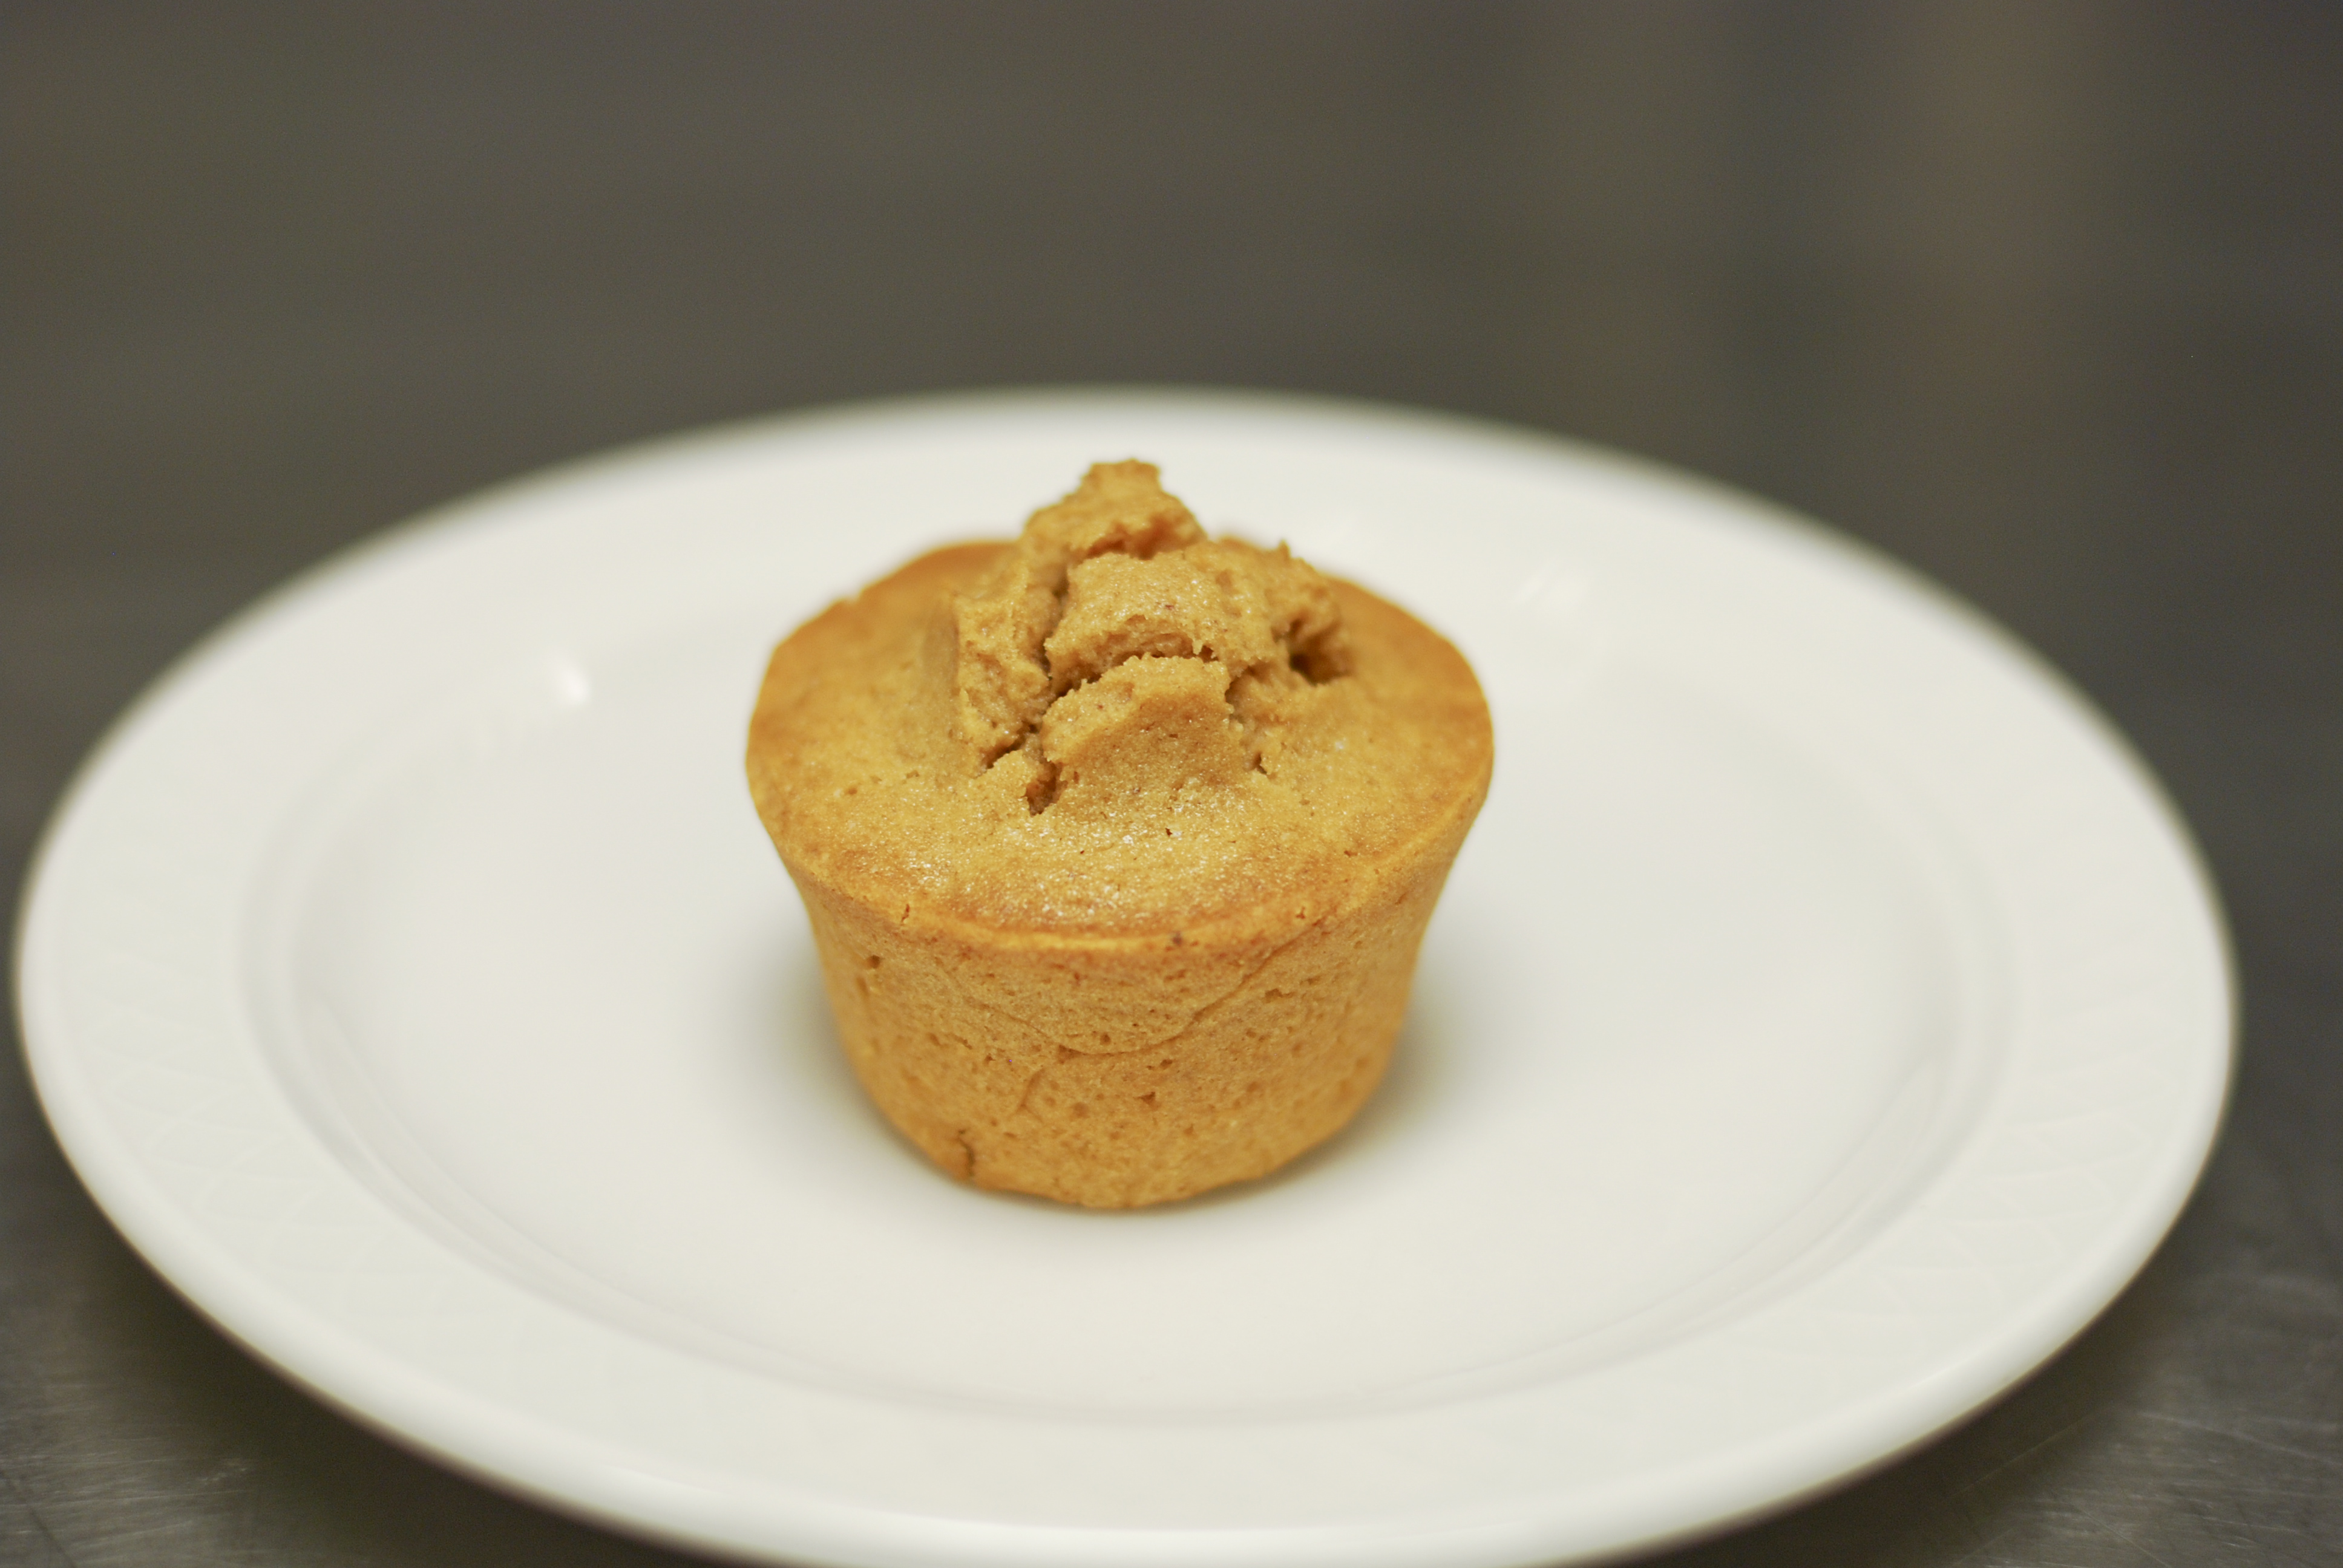 Peanut Financiers